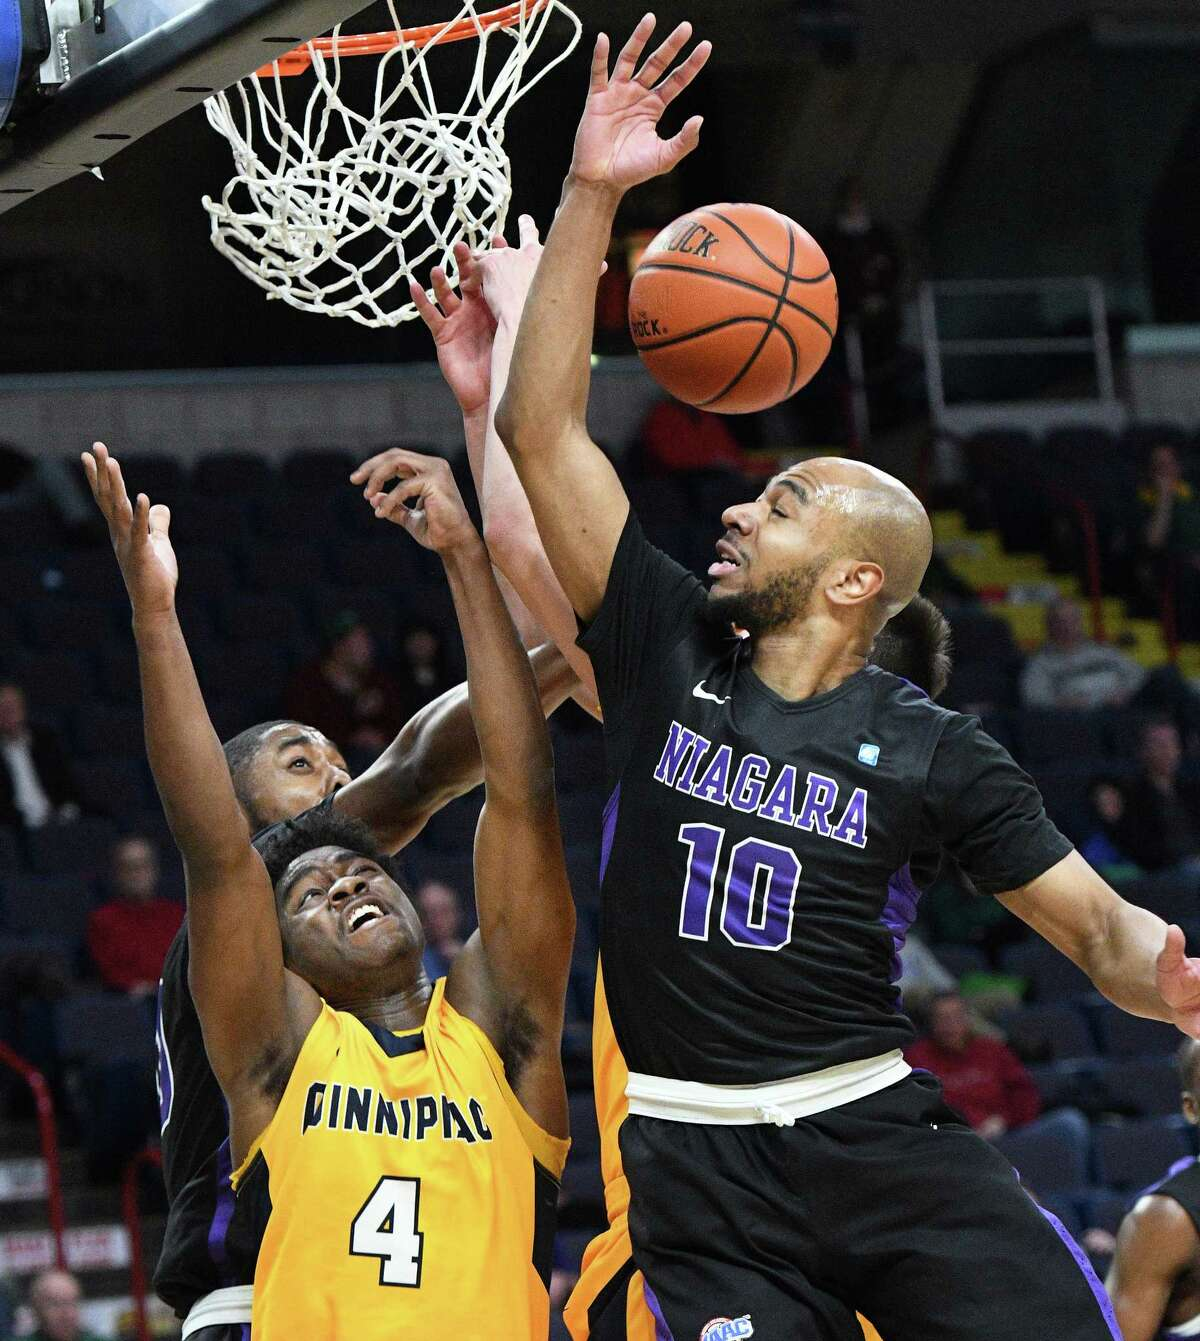 Quinnipiac's #4 Phil Winston battles Niagara's #20 Maurice Taylor Jr., left, and #10 Kahlil Dukes for a rebound during their first round MACC tourney game at the Times Union Center Thursday March 2, 2017 in Albany, NY. (John Carl D'Annibale / Times Union)